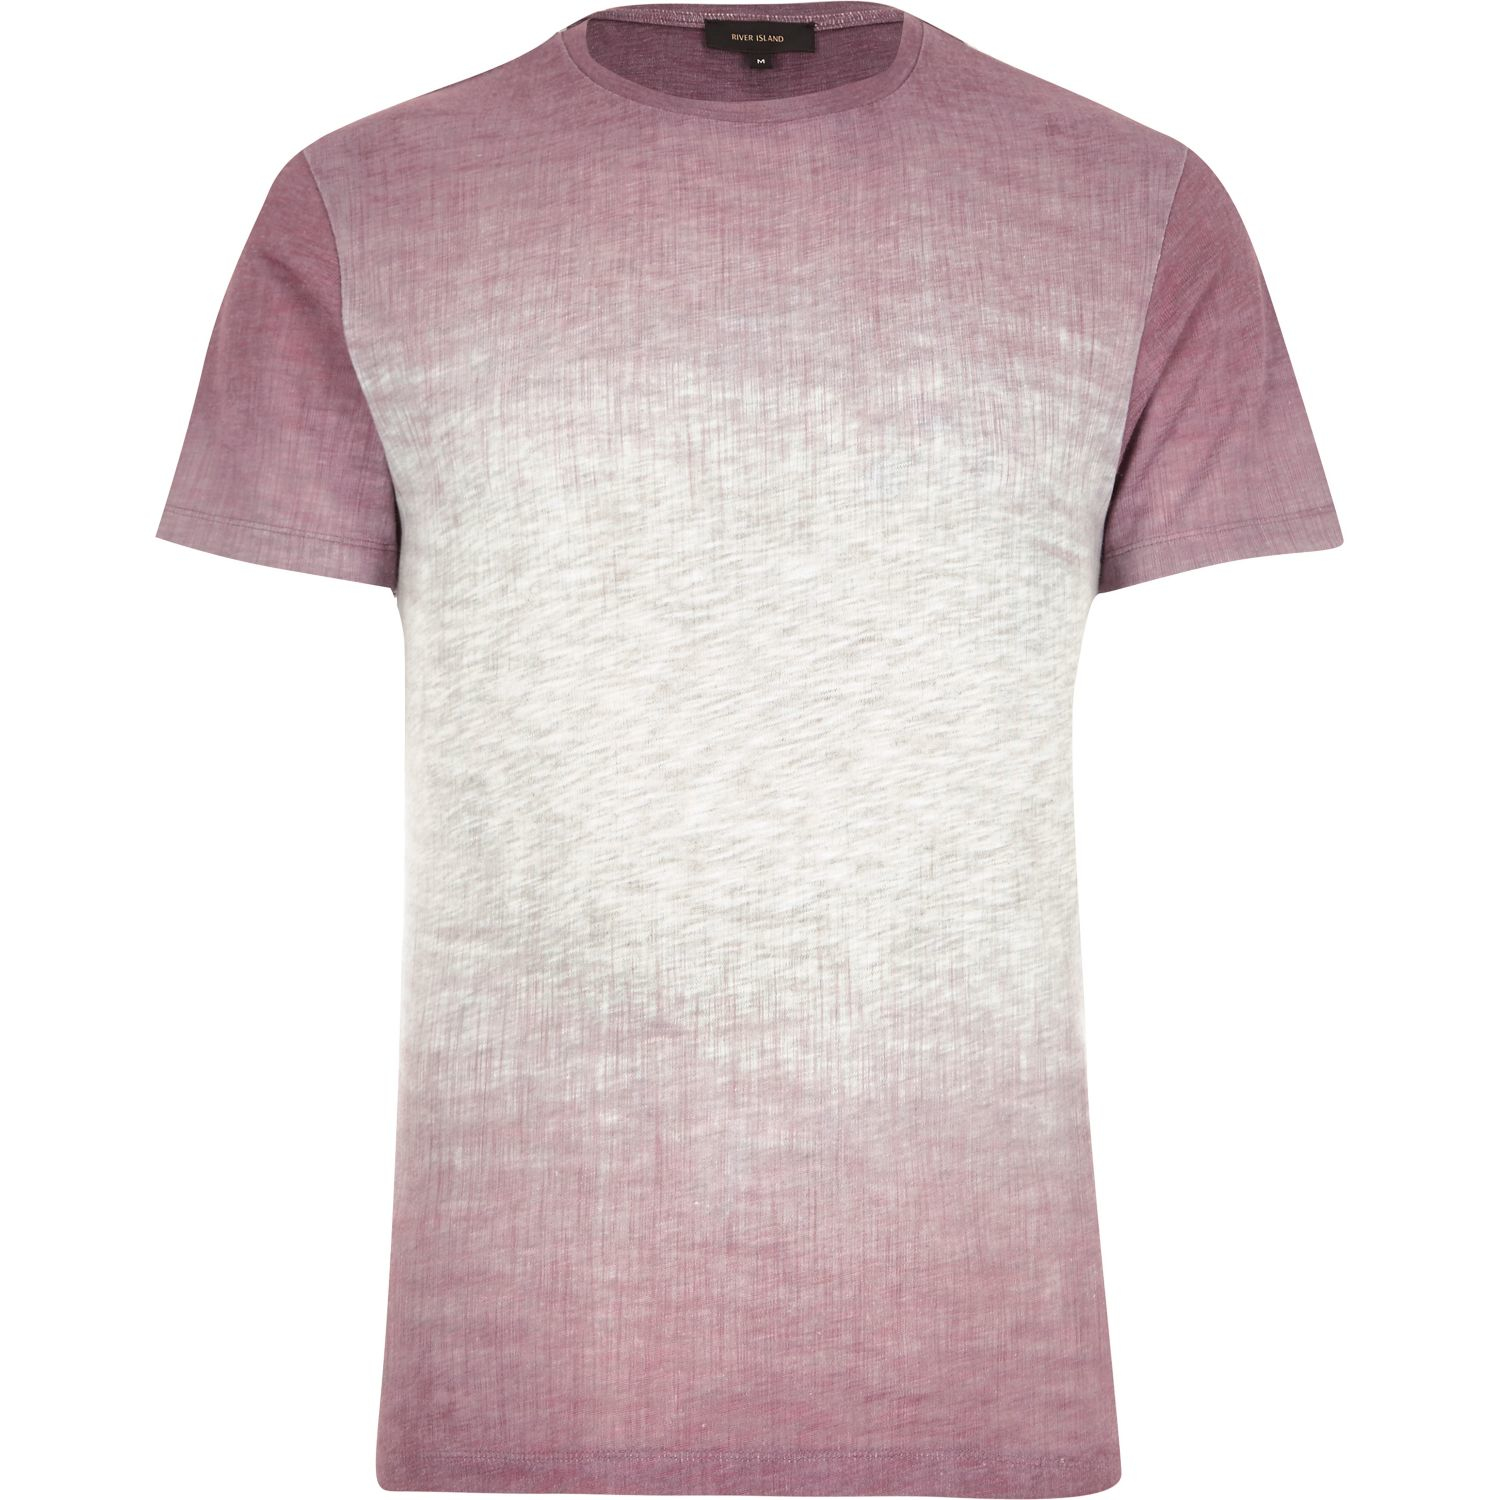 Lyst river island pink textured faded t shirt in pink for Faded color t shirts